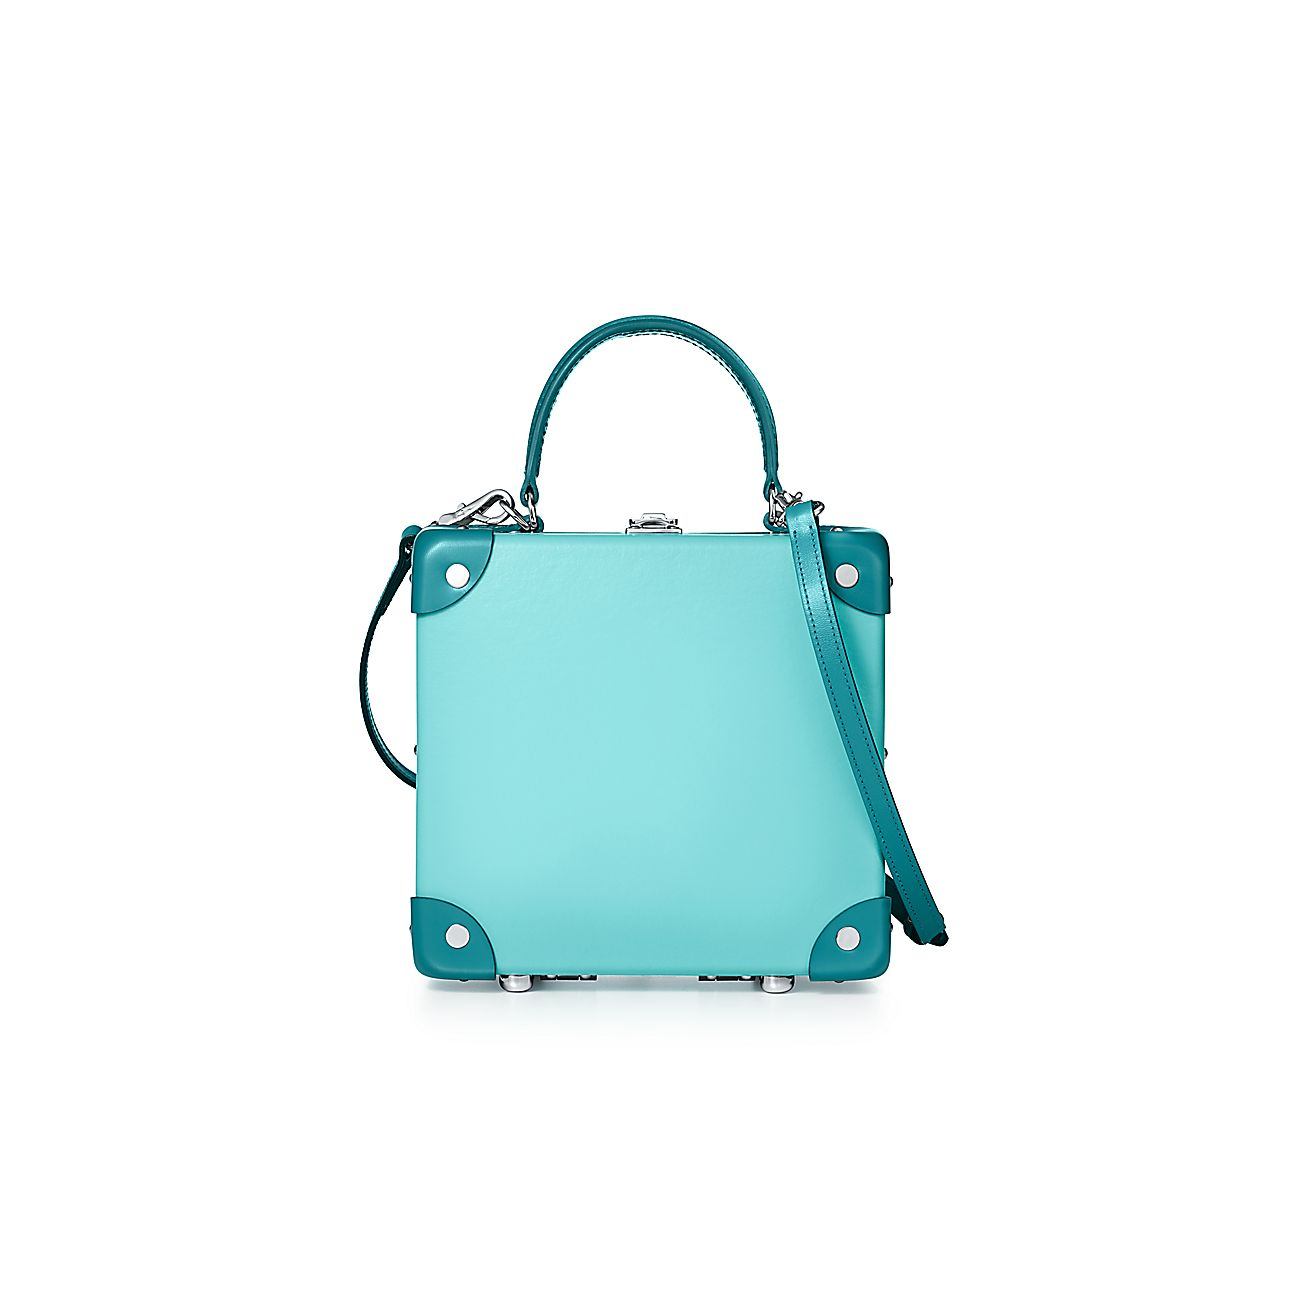 London Square Bag In Tiffany Blue